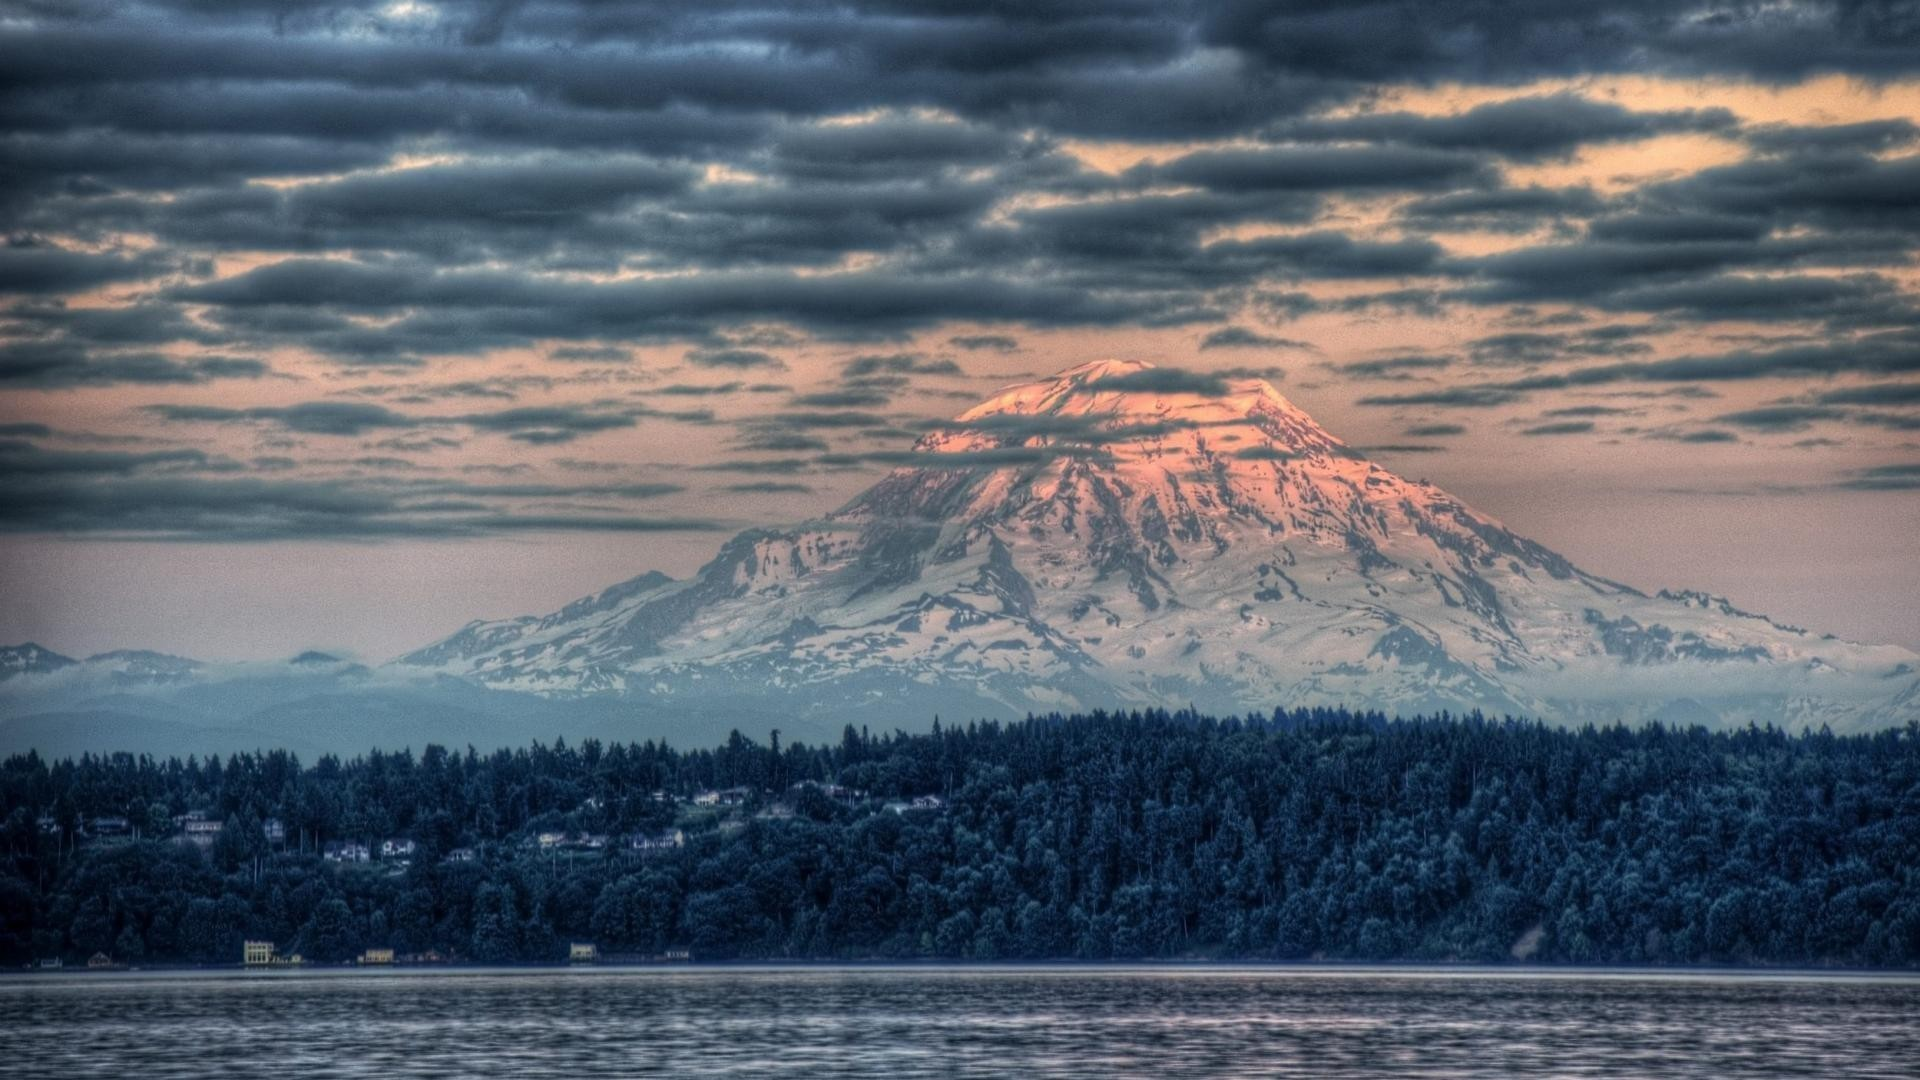 1920x1080 Majestic mount rainier at sunset hdr wallpaper